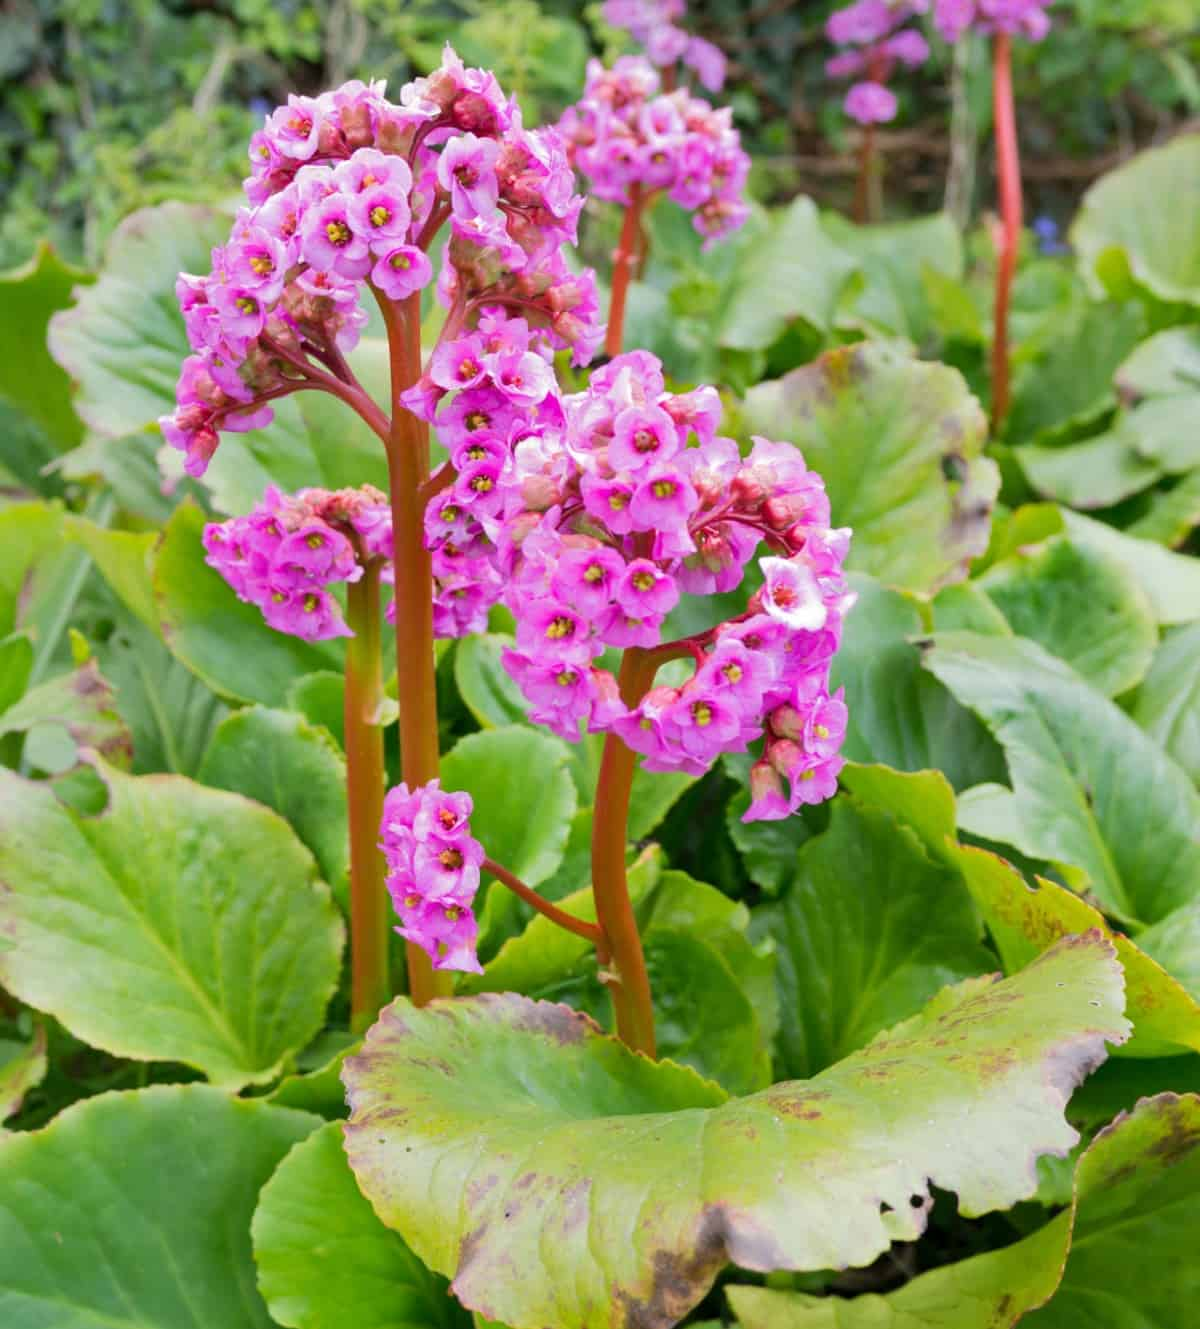 bergenia is an easy-to-grow evergreen plant